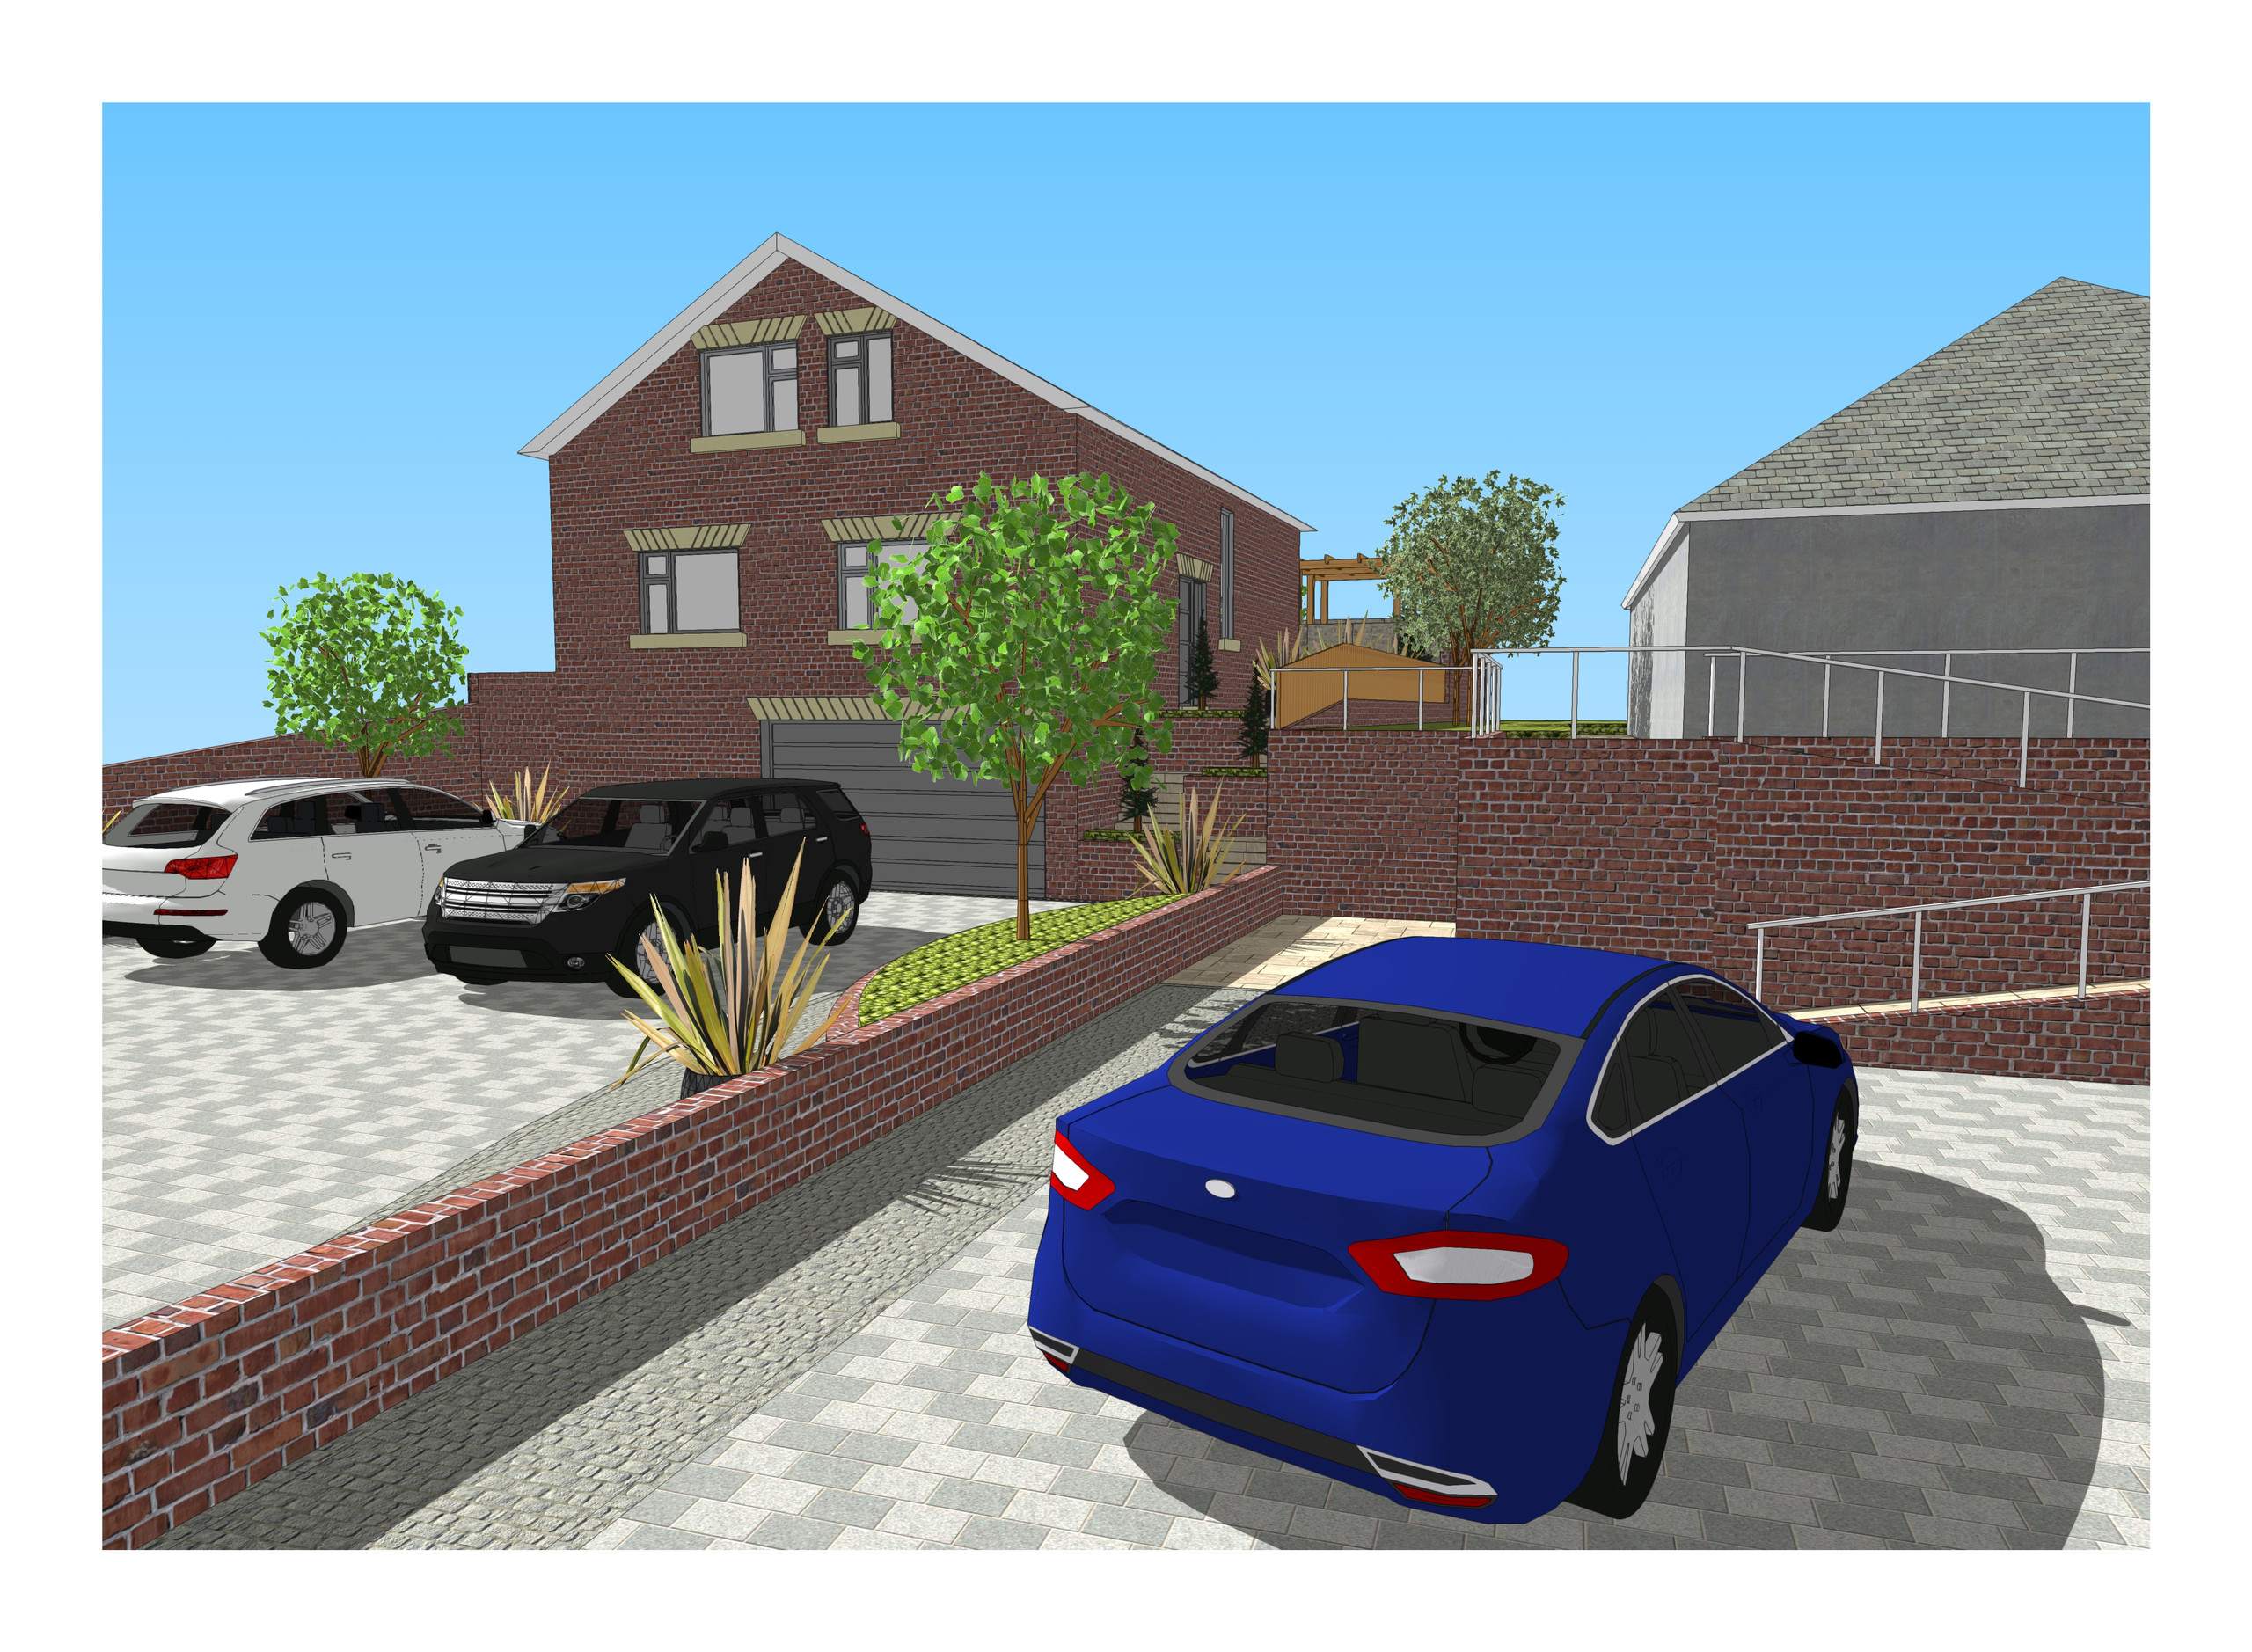 4. 3D images for a new build property in Uton West Yorkshire. Garden designer in Wakefield